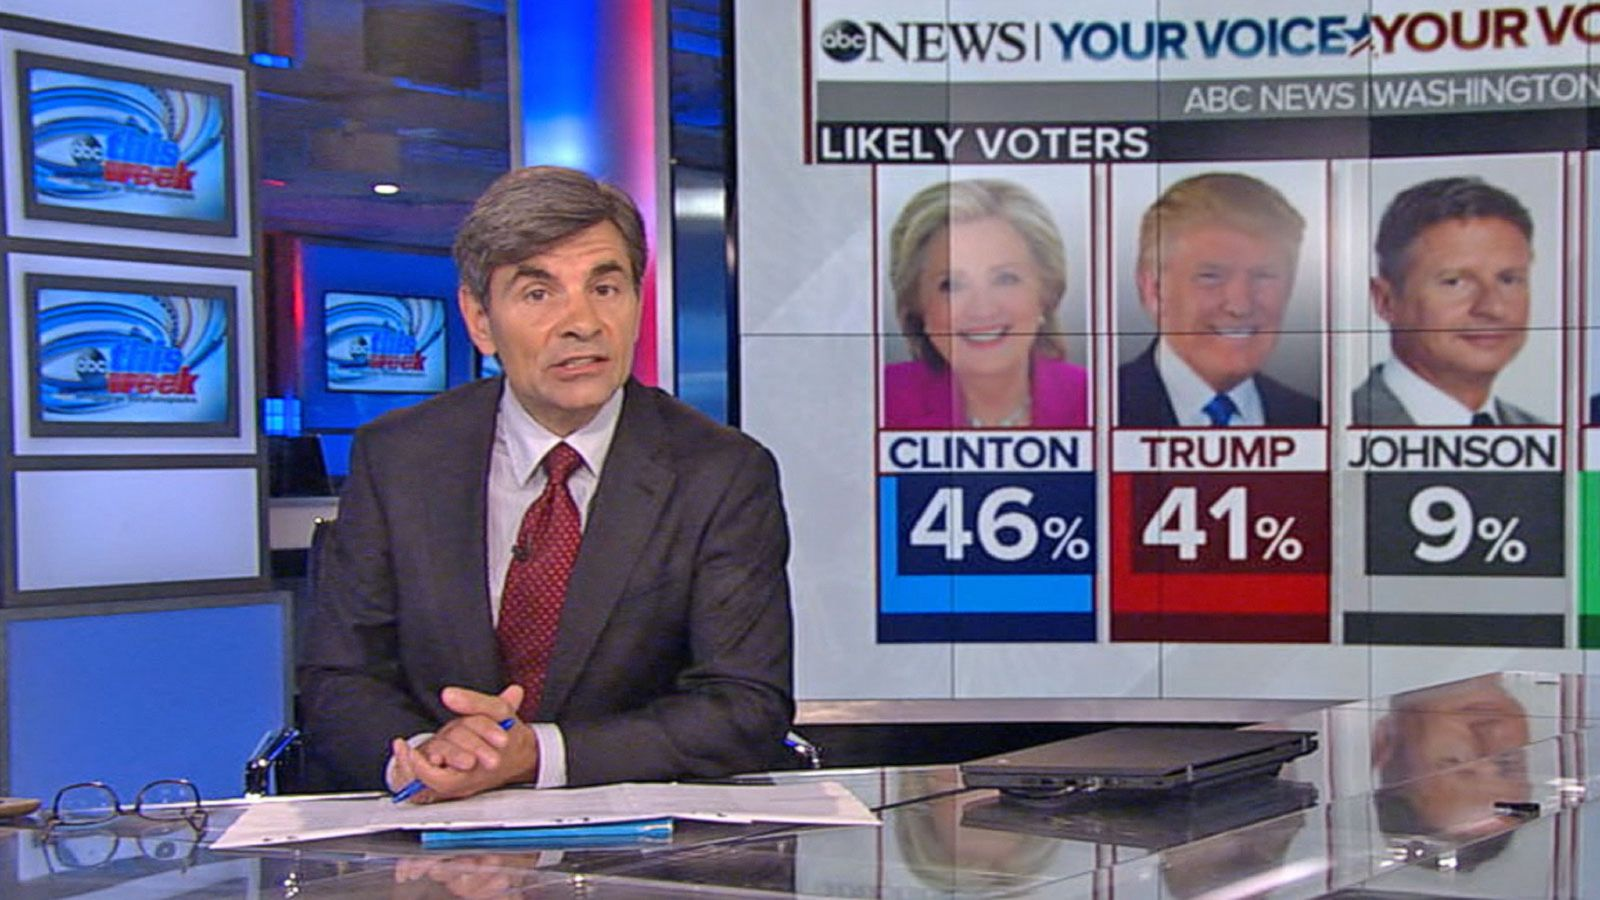 2016 presidential candidates amp election news   abc news